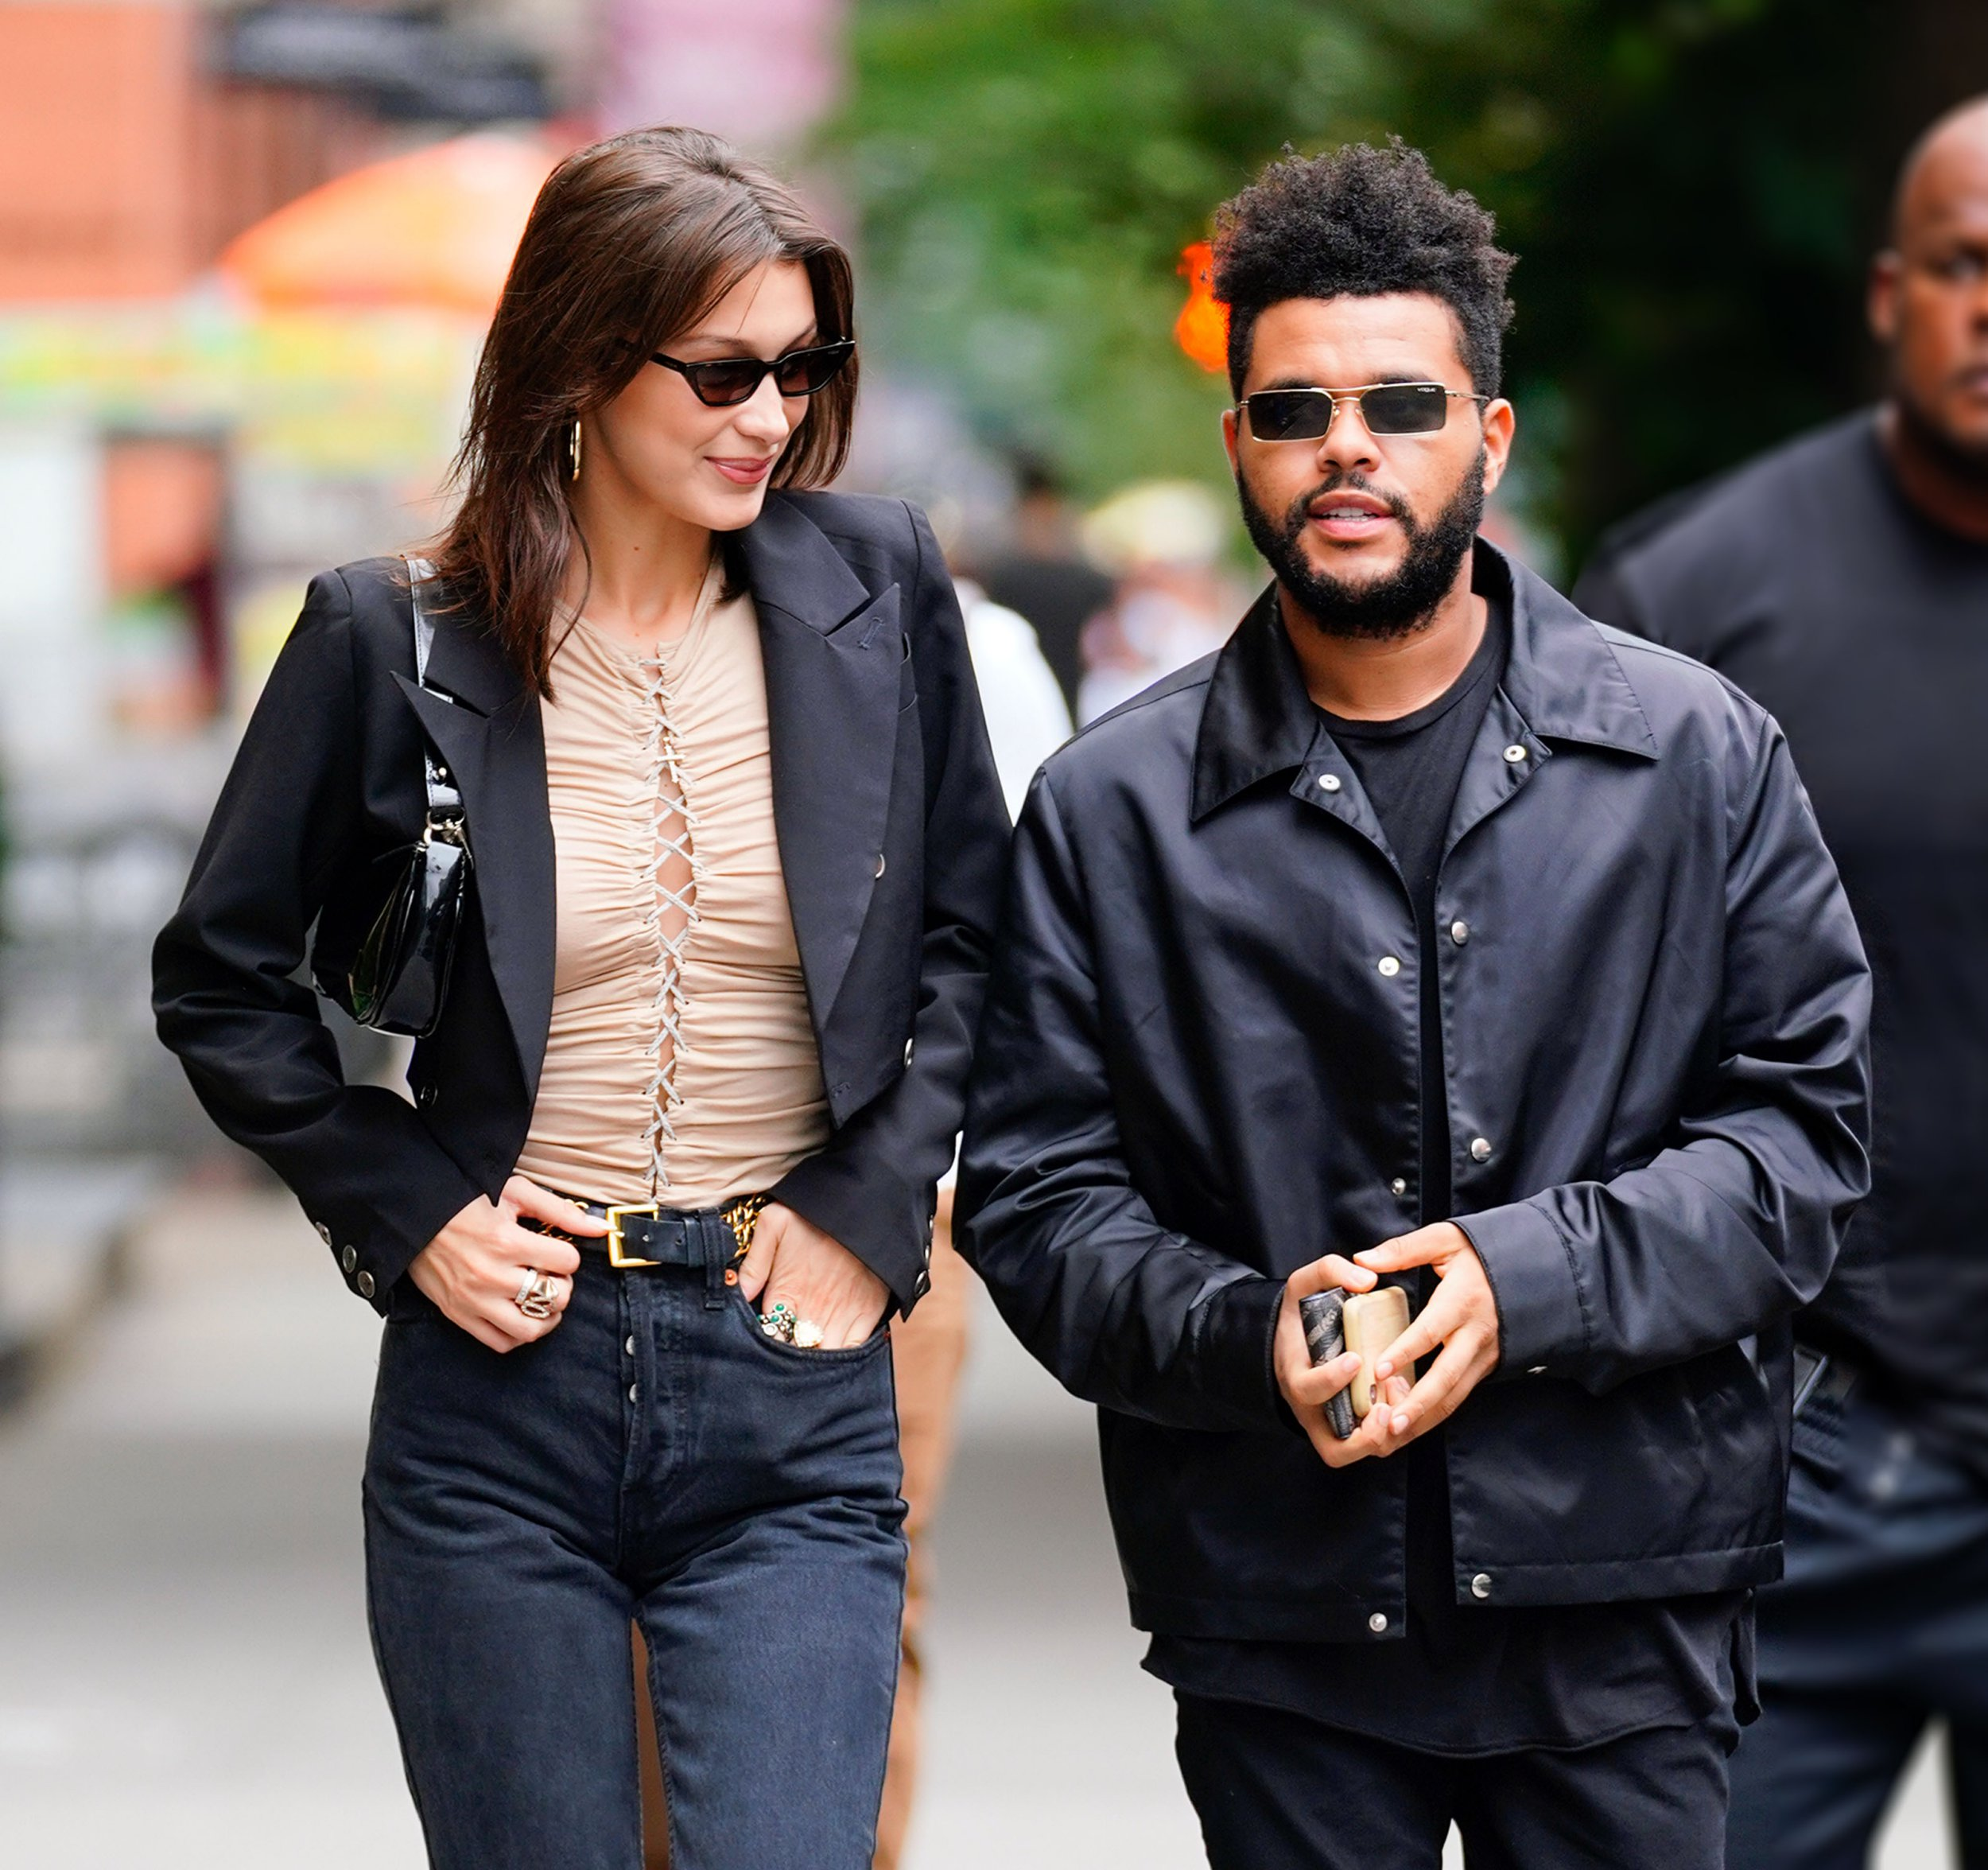 Bella Hadid is all smiles as she goes to her birthday lunch with The Weeknd in New York Pictured: Bella Hadid,The Weeknd Ref: SPL5031798 091018 NON-EXCLUSIVE Picture by: Jackson Lee / SplashNews.com Splash News and Pictures Los Angeles: 310-821-2666 New York: 212-619-2666 London: 0207 644 7656 Milan: +39 02 4399 8577 Sydney: +61 02 9240 7700 photodesk@splashnews.com World Rights,